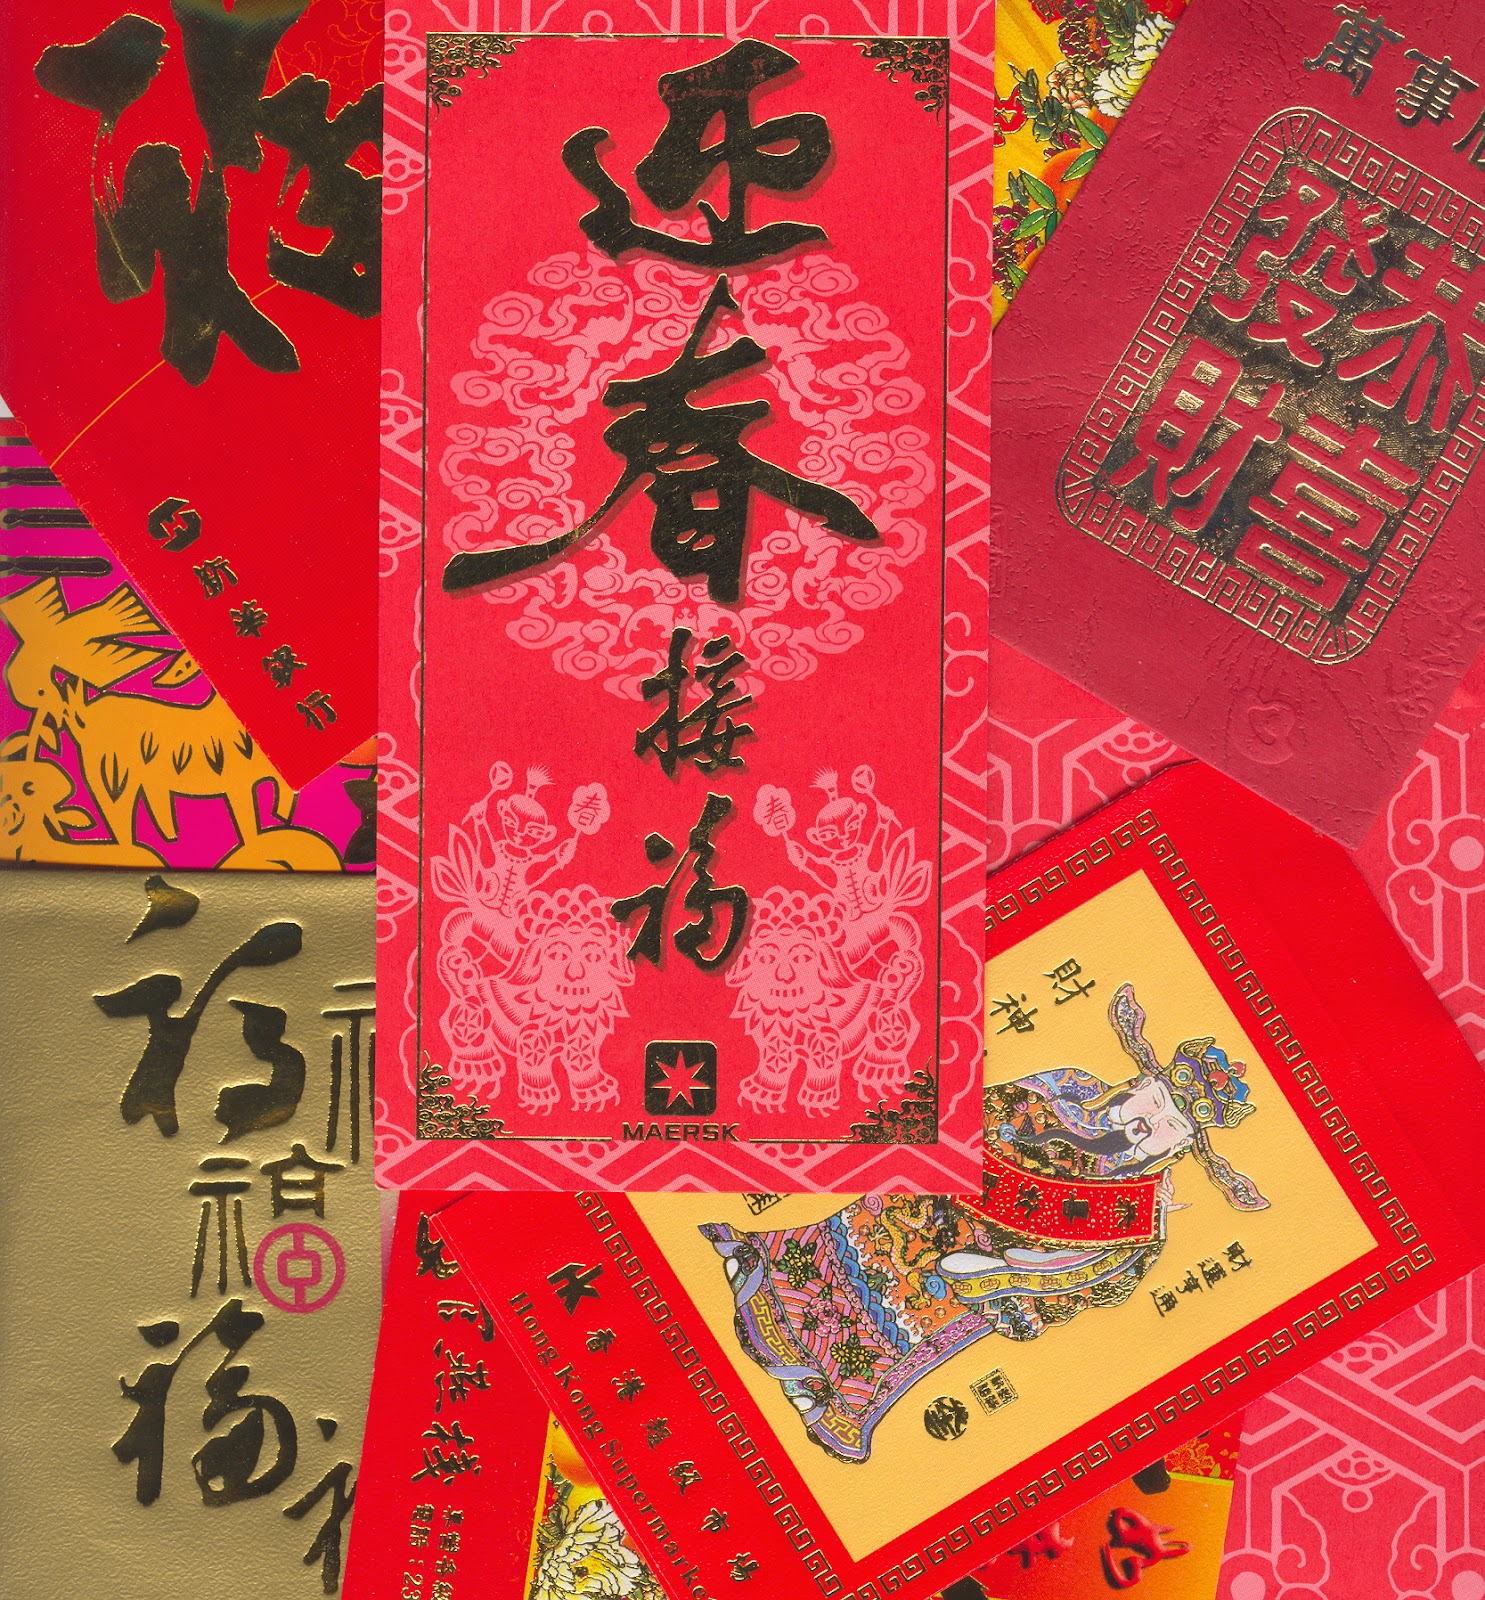 Traditional Chinese New Year practices, red envelopes